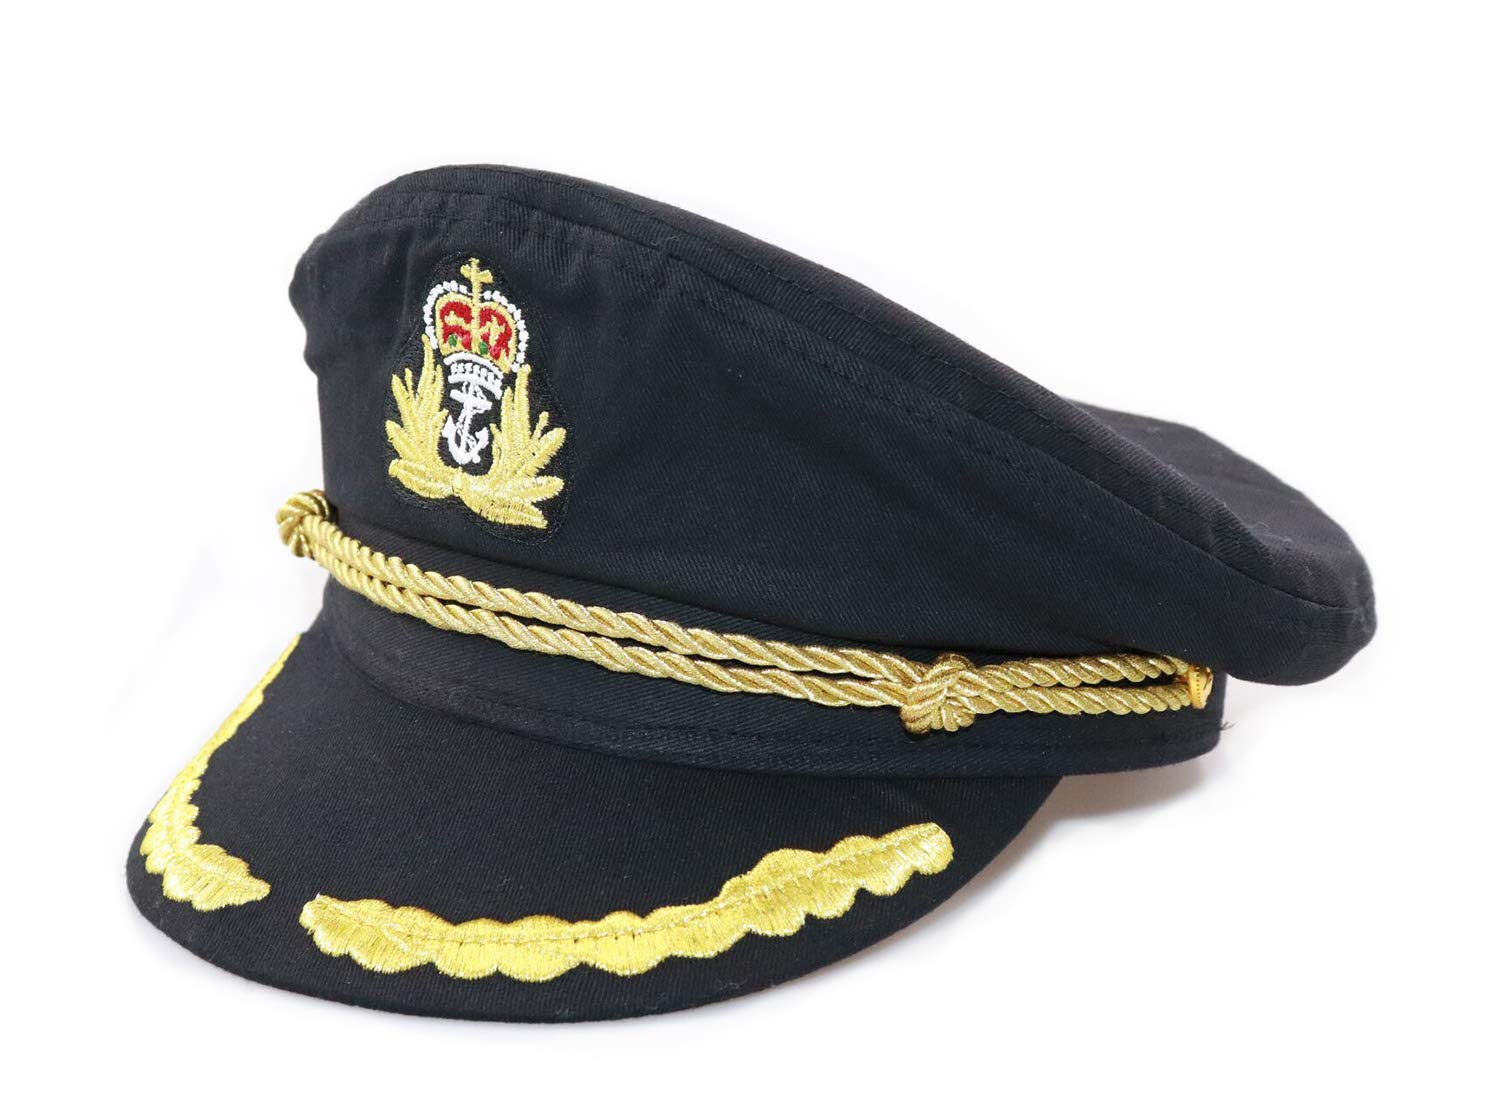 Ibeauti Unisex Adjustable Captain Costume Admiral Hat Cosplay Black Sailor Cap ( Black )